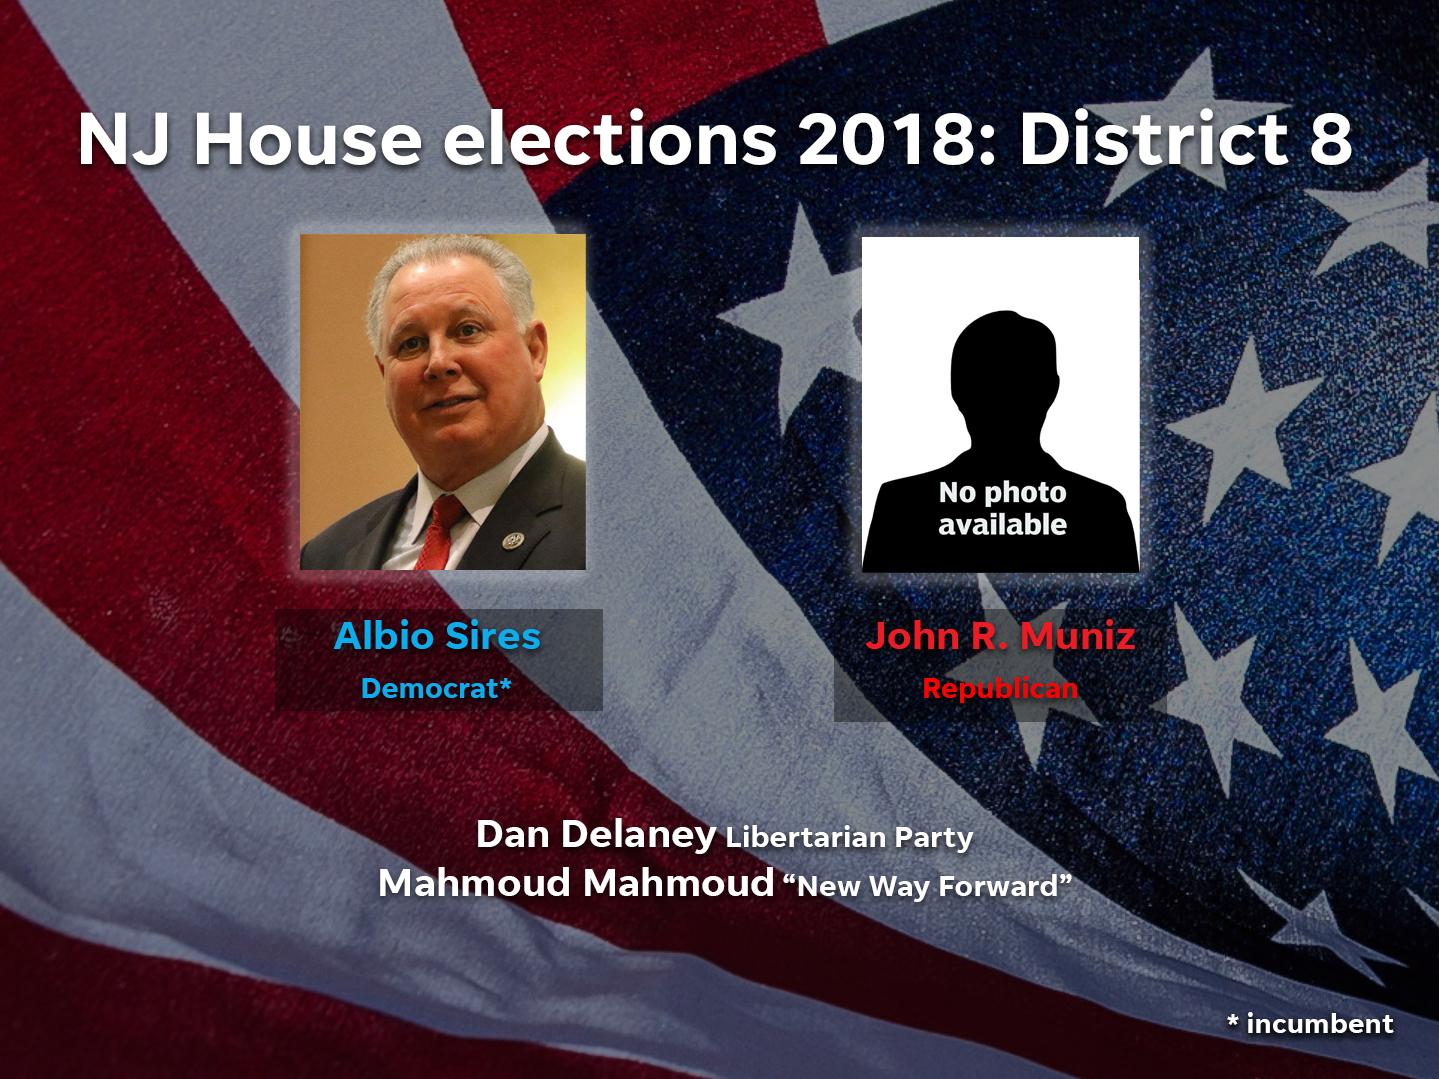 Albio Sires (D) and John R. Muniz (R) are among the candidates running in District 8 in the 2018 NJ House elections.